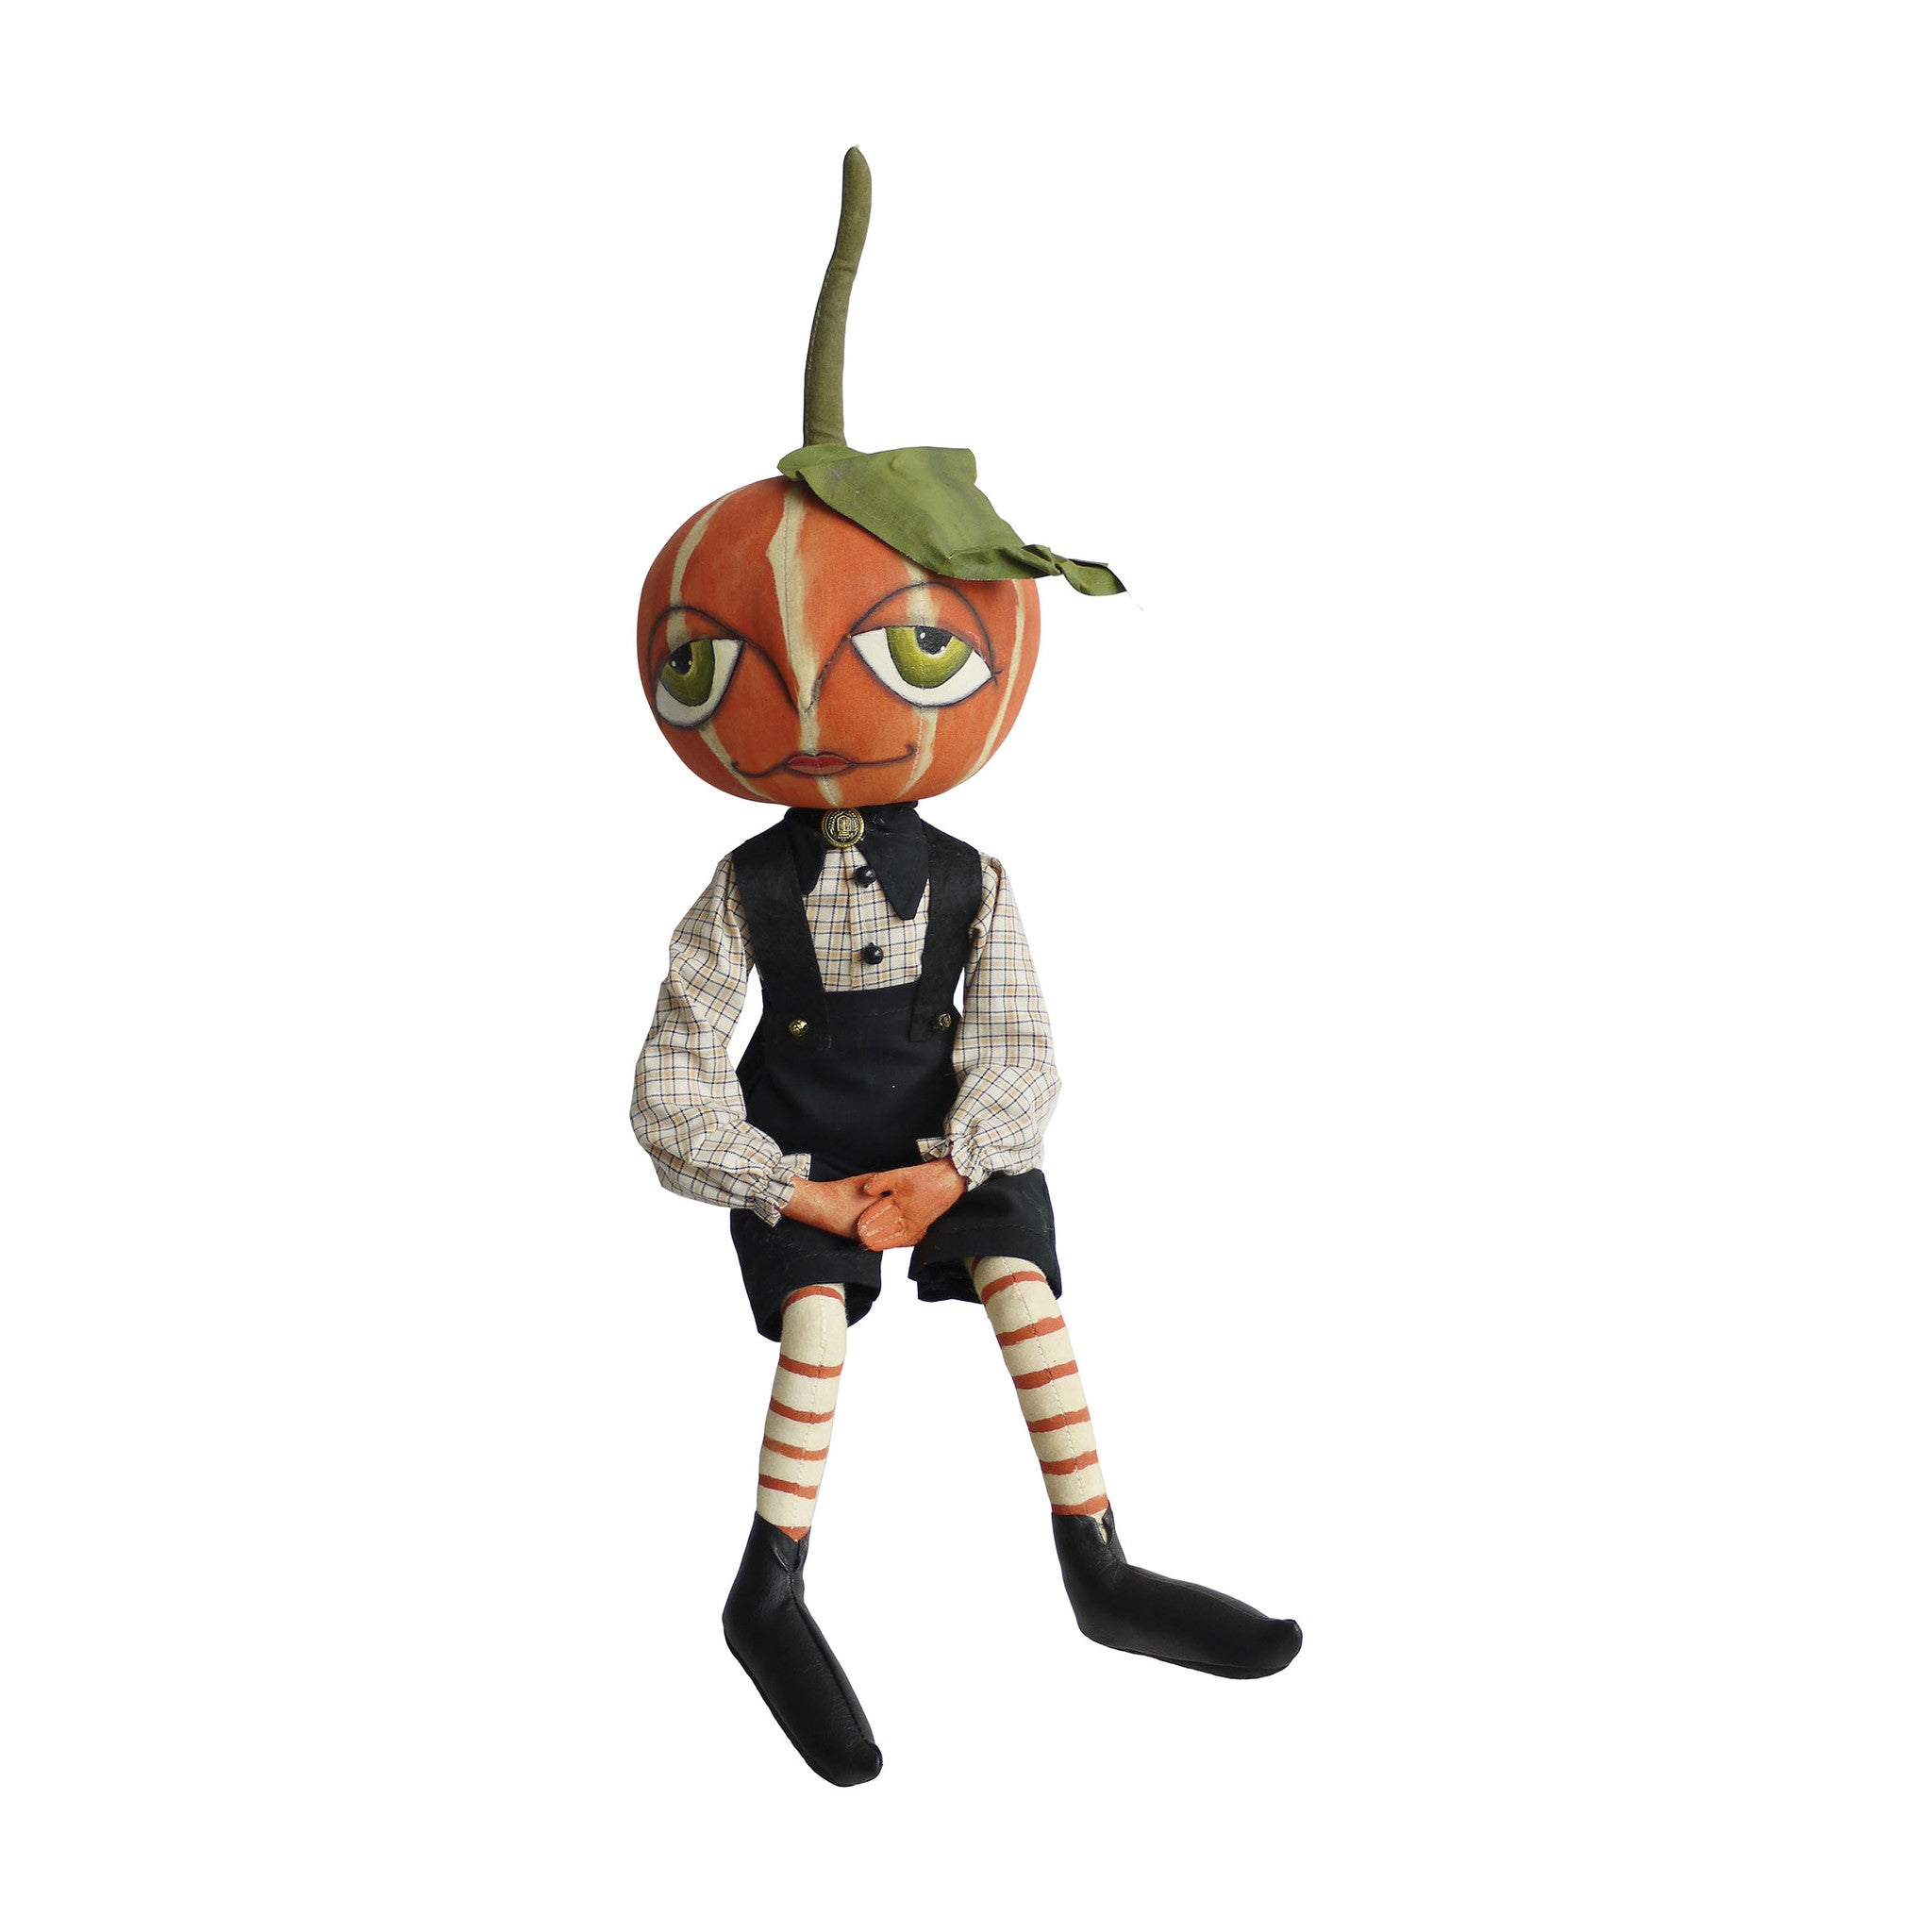 Garfunkel Pumpkin Boy - Joe Spencer Halloween Pumpkin Head Doll